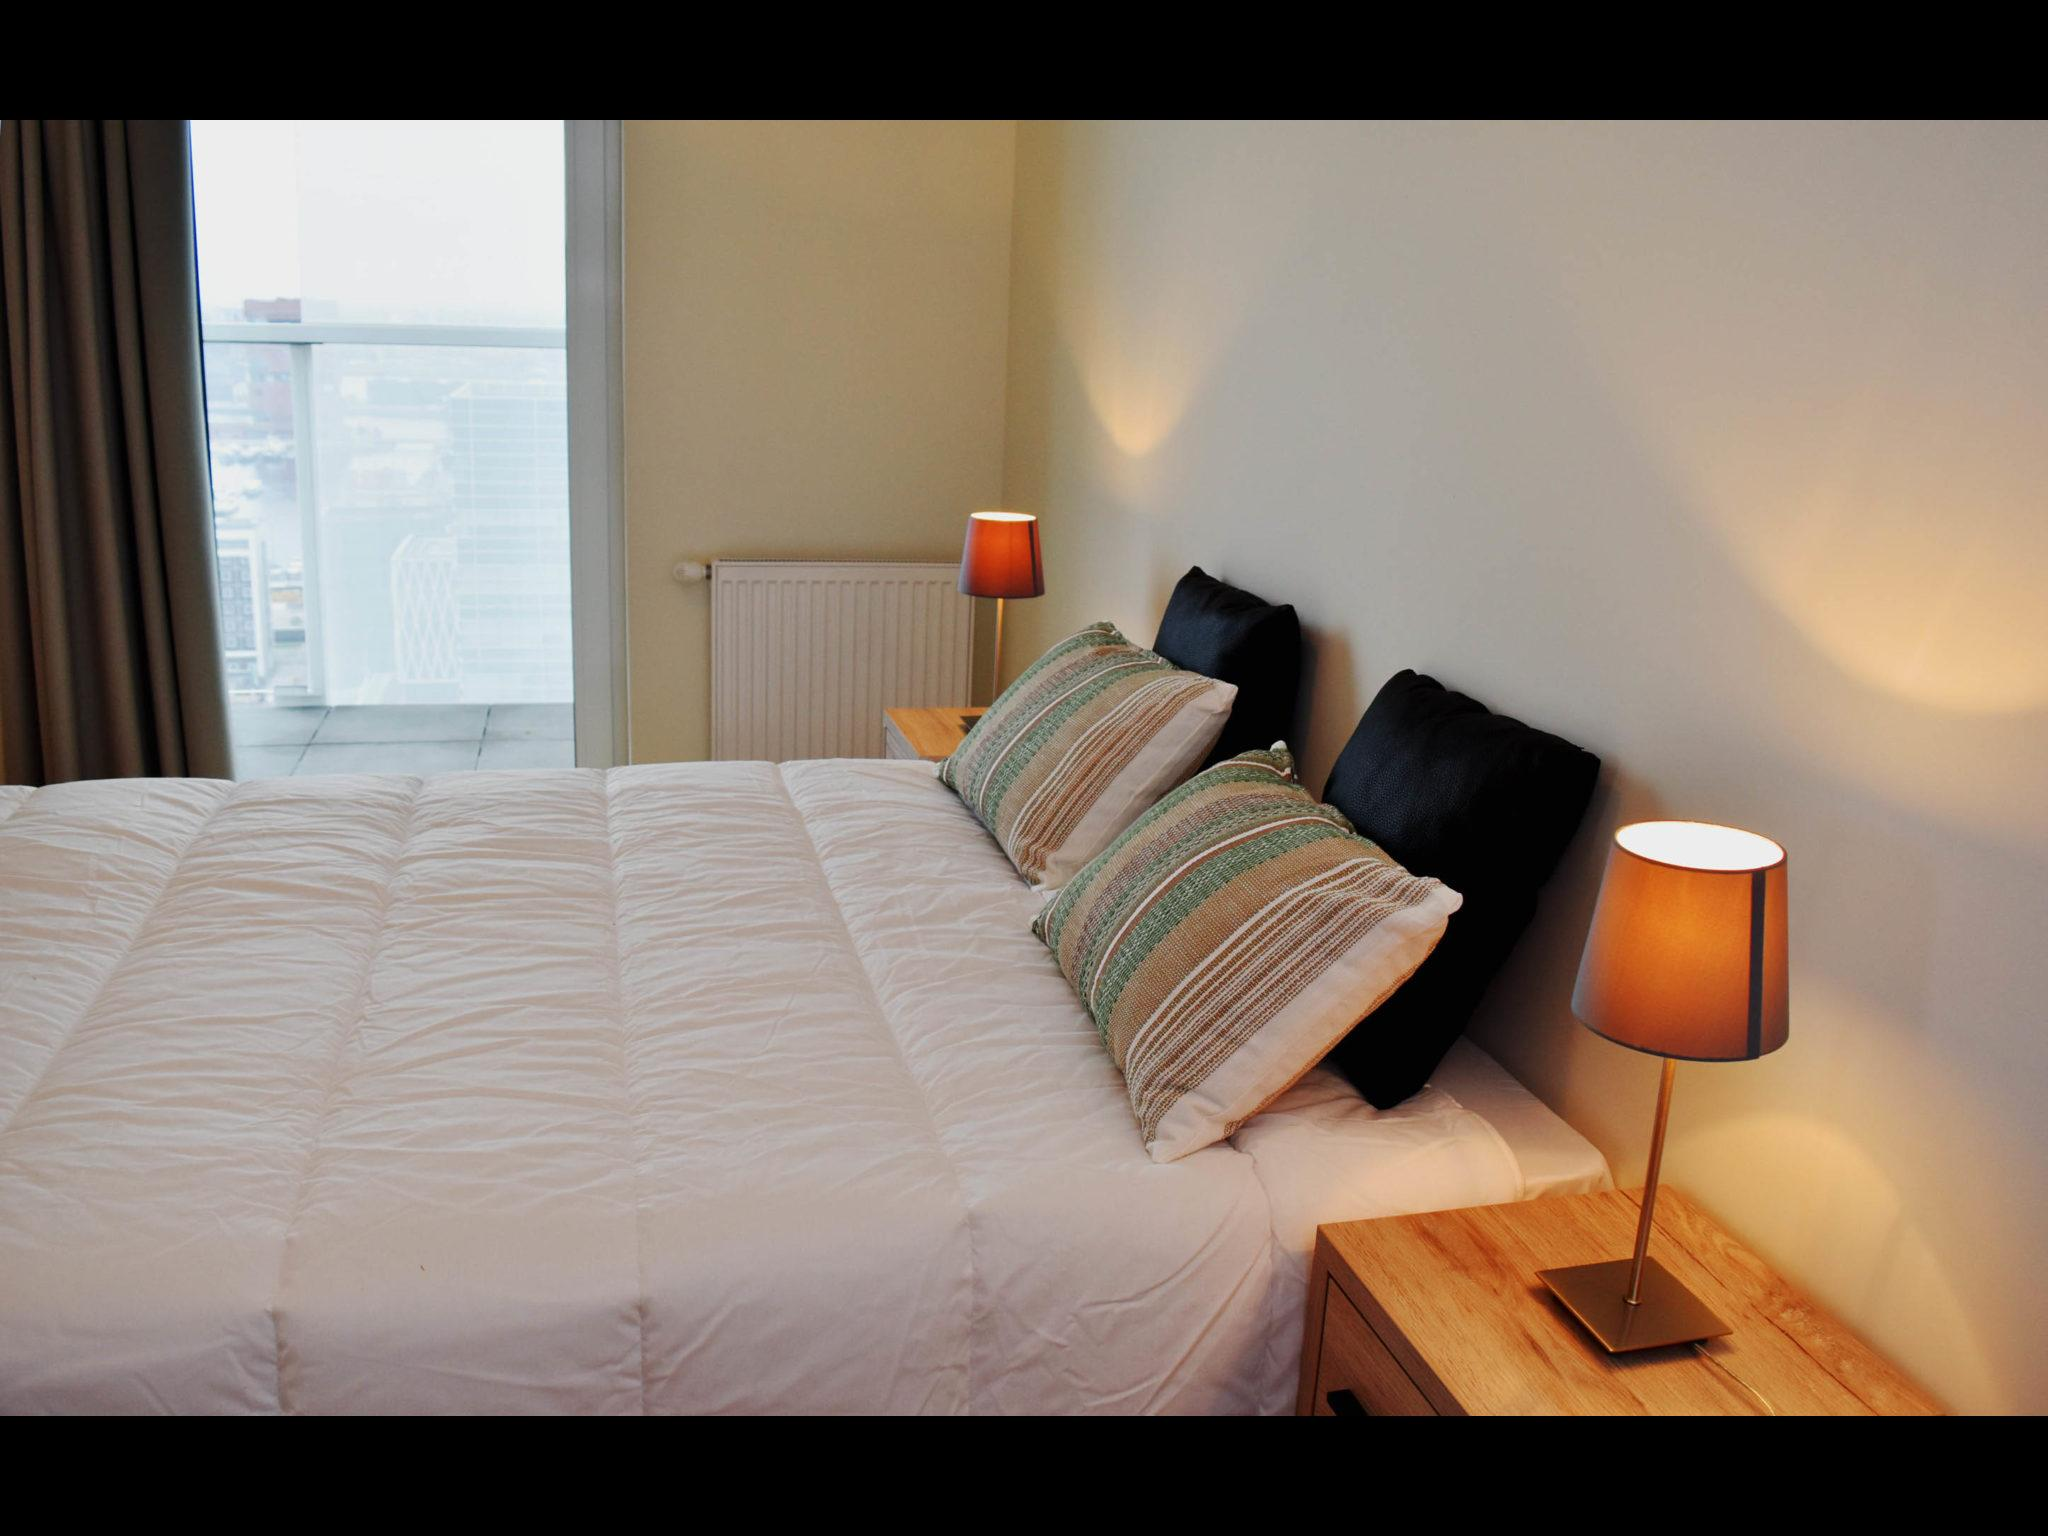 Ellermans - Exclusive apartment in Antwerp for expats